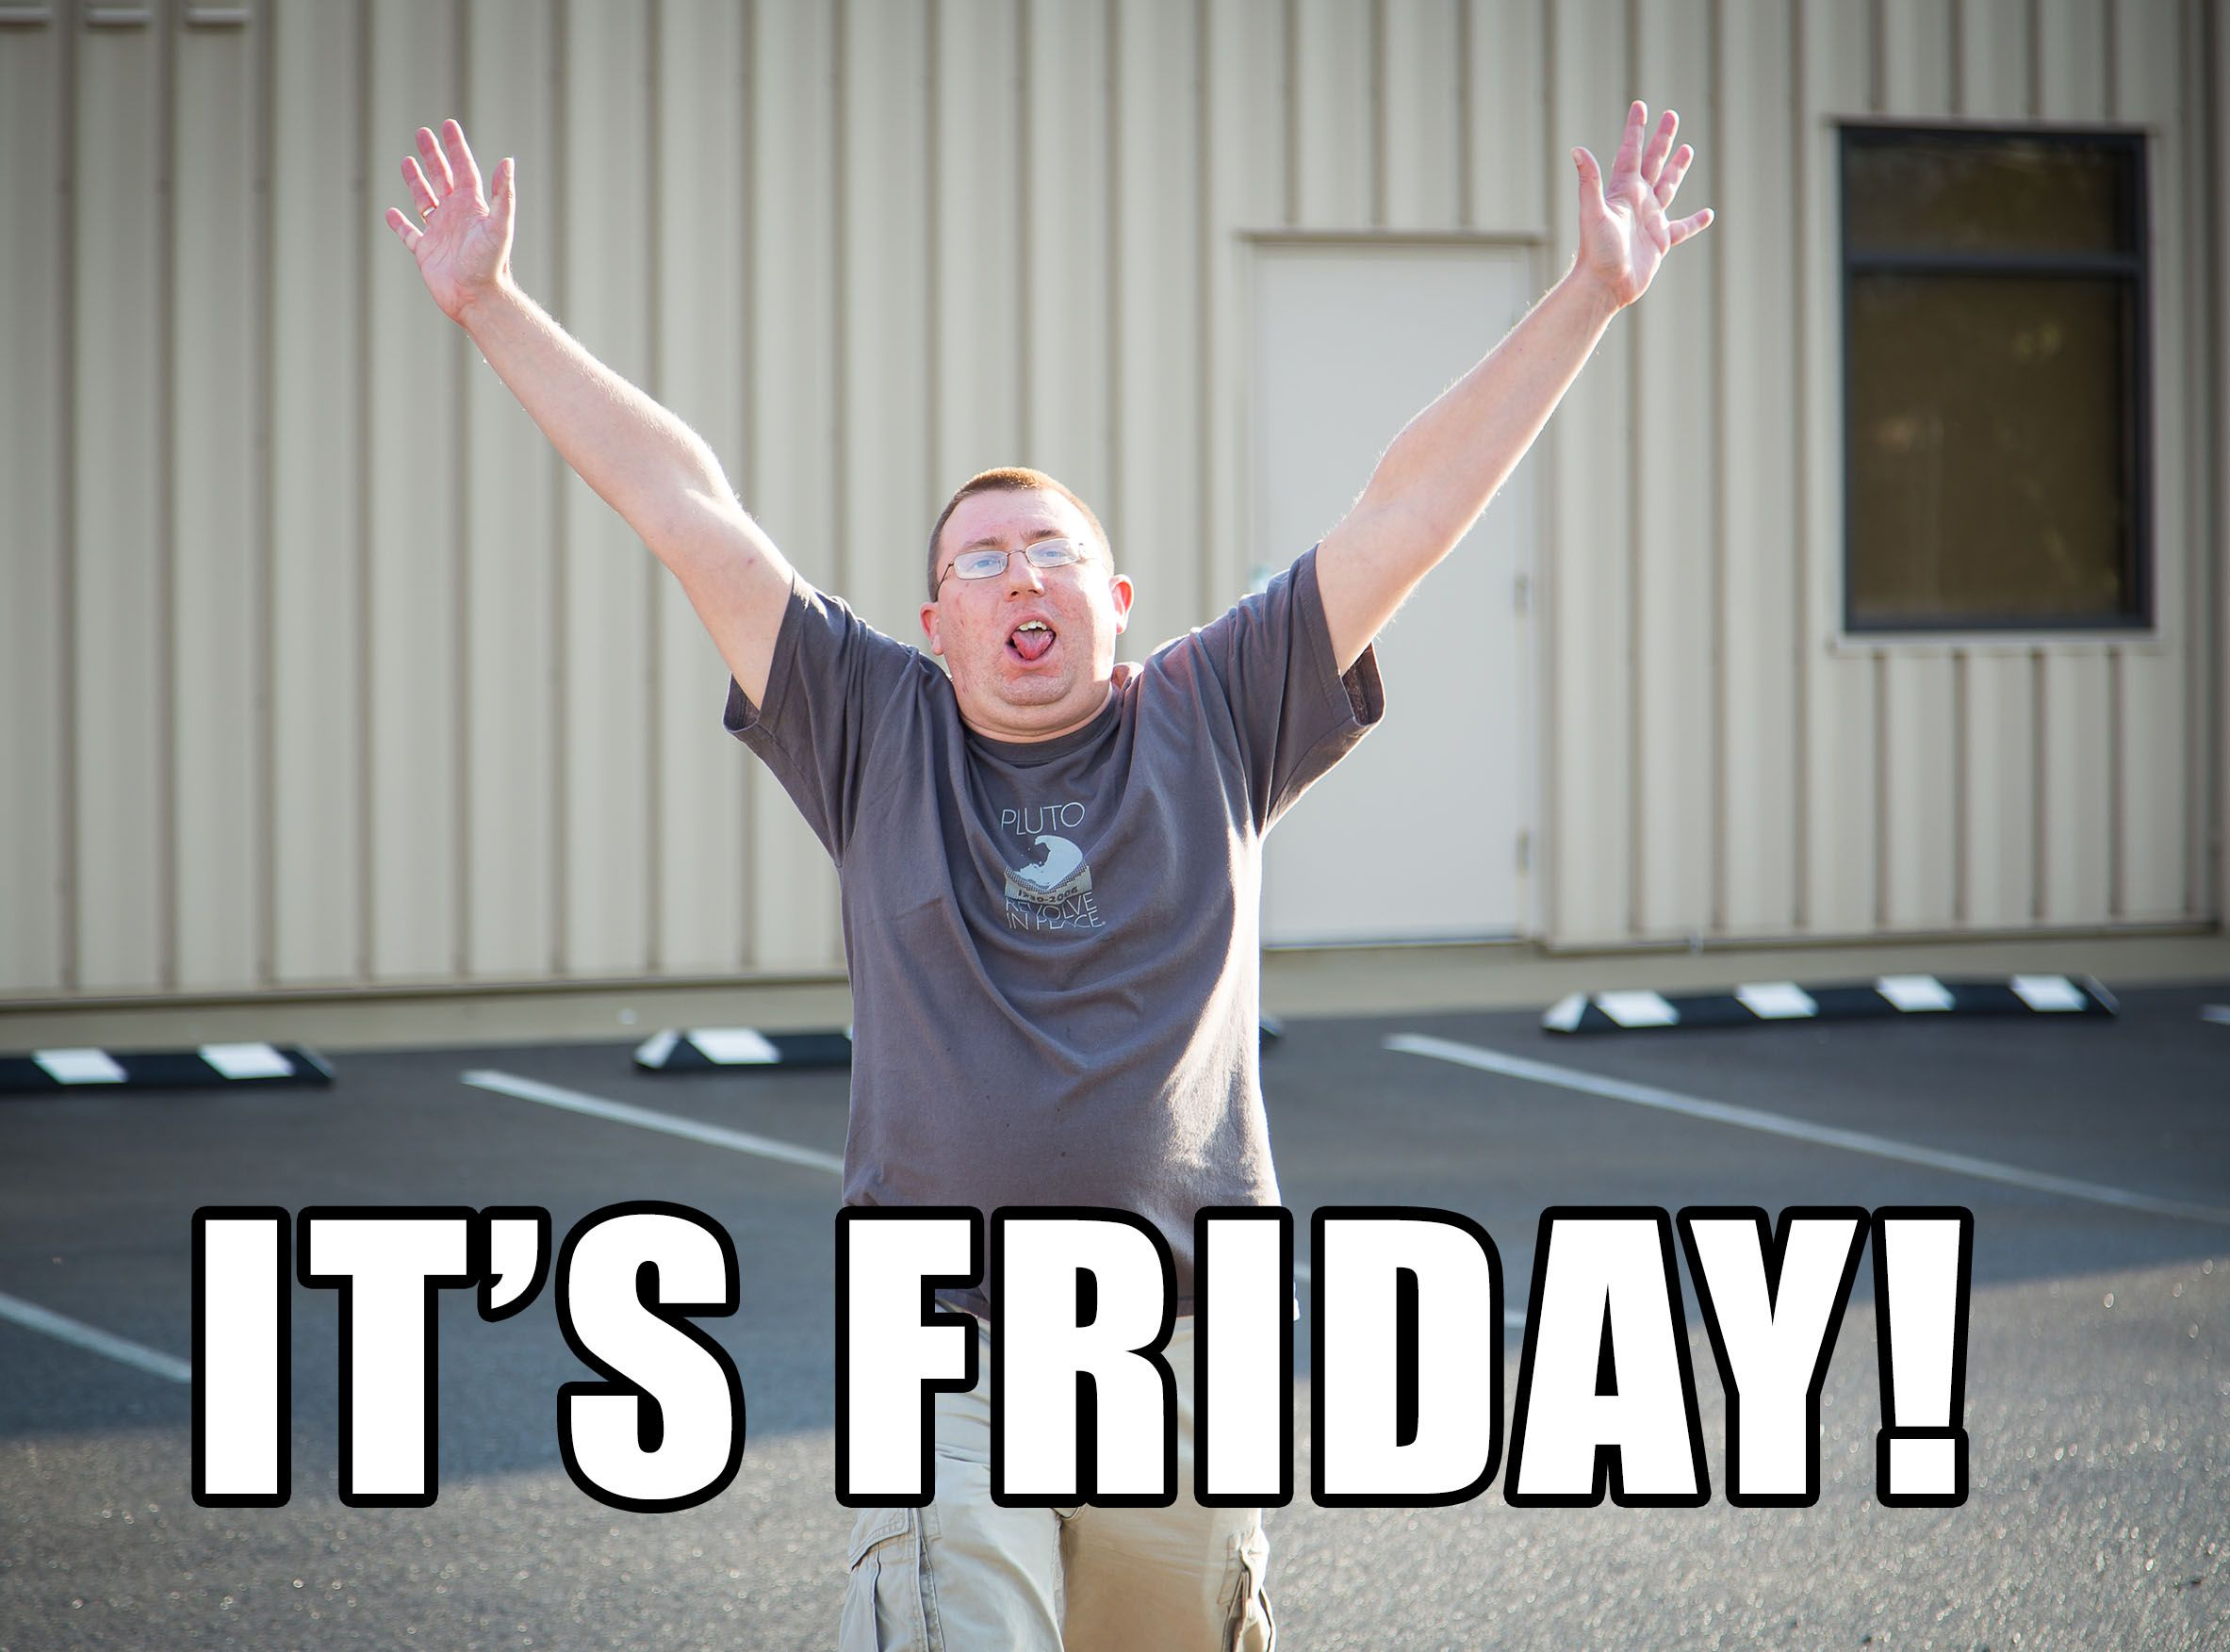 It's Friday! What are your plans for the weekend?  #friday #weekend #TGIF